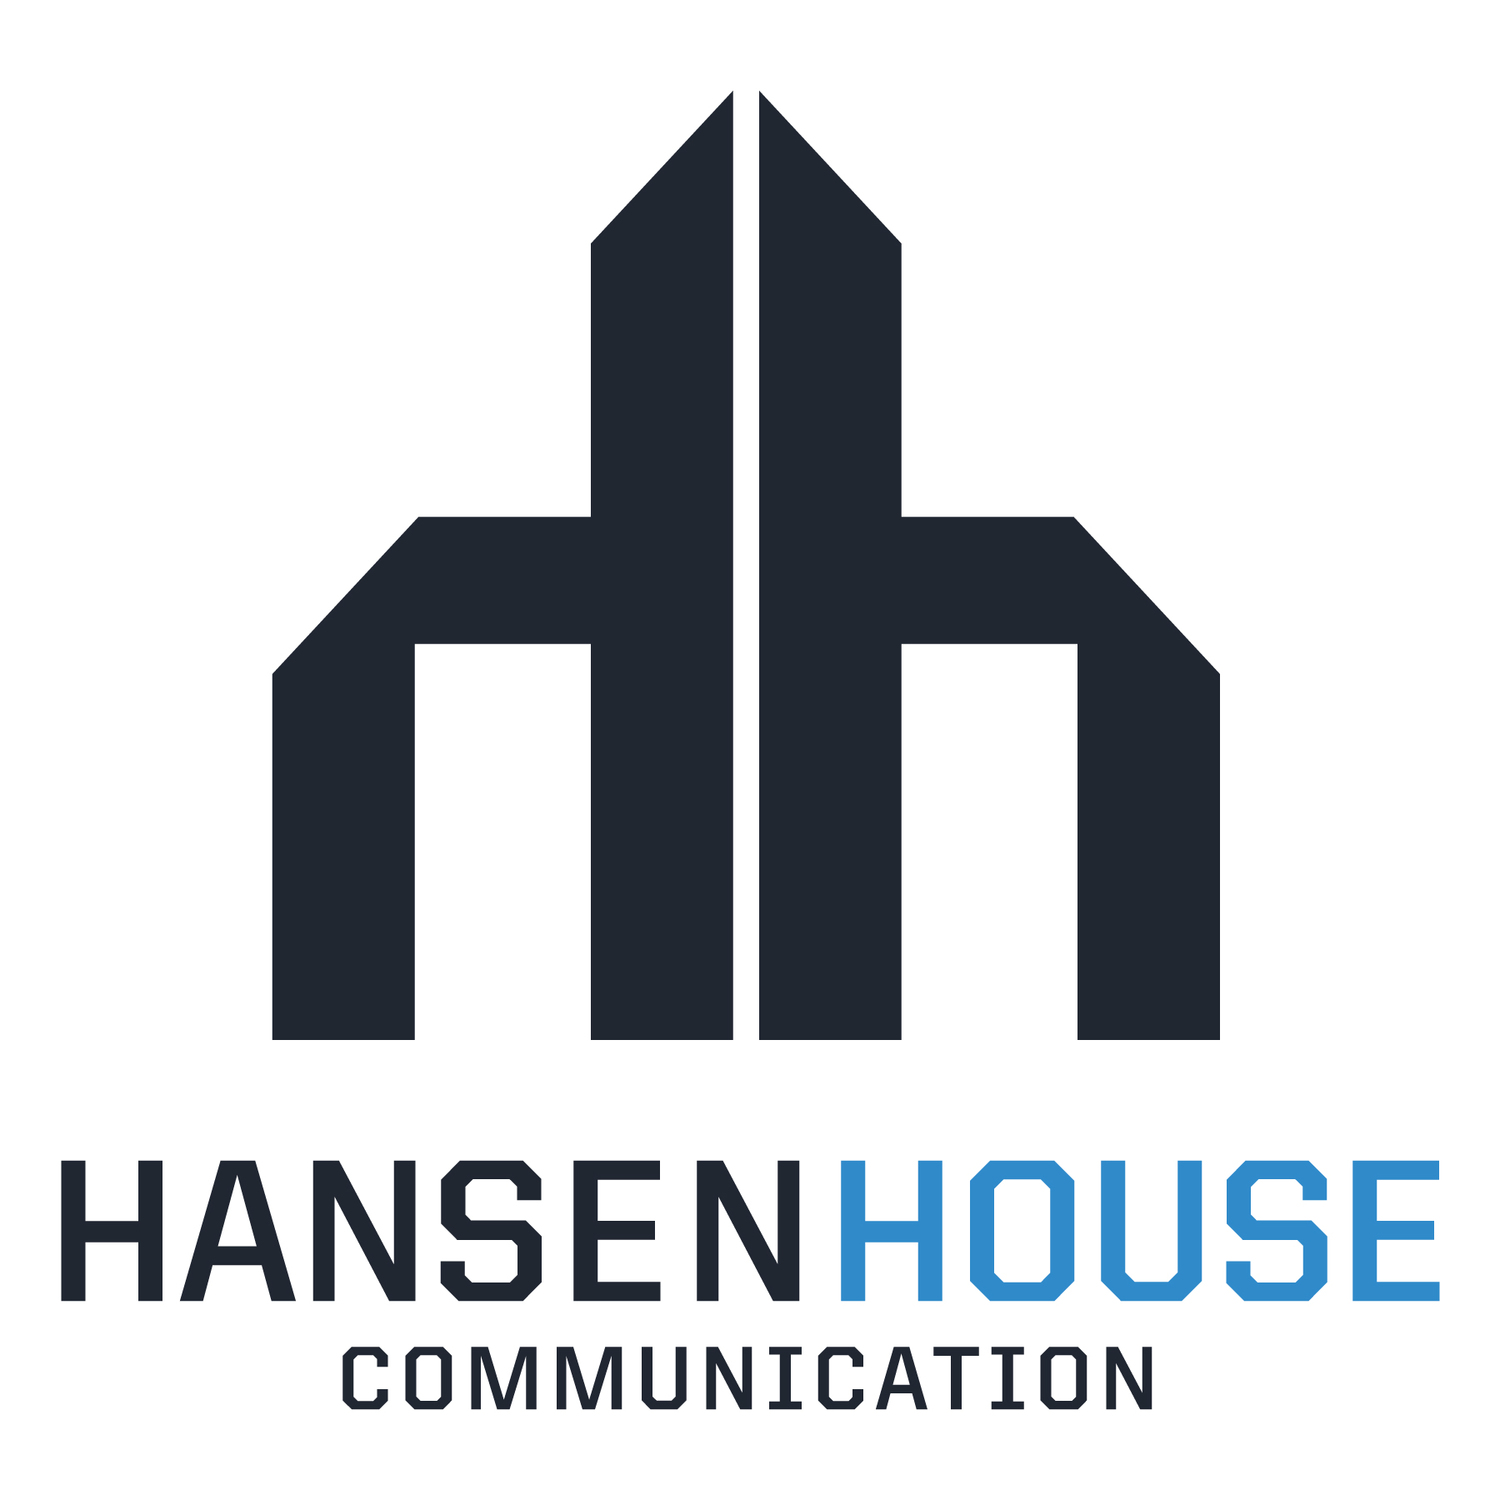 HansenHouse Communication